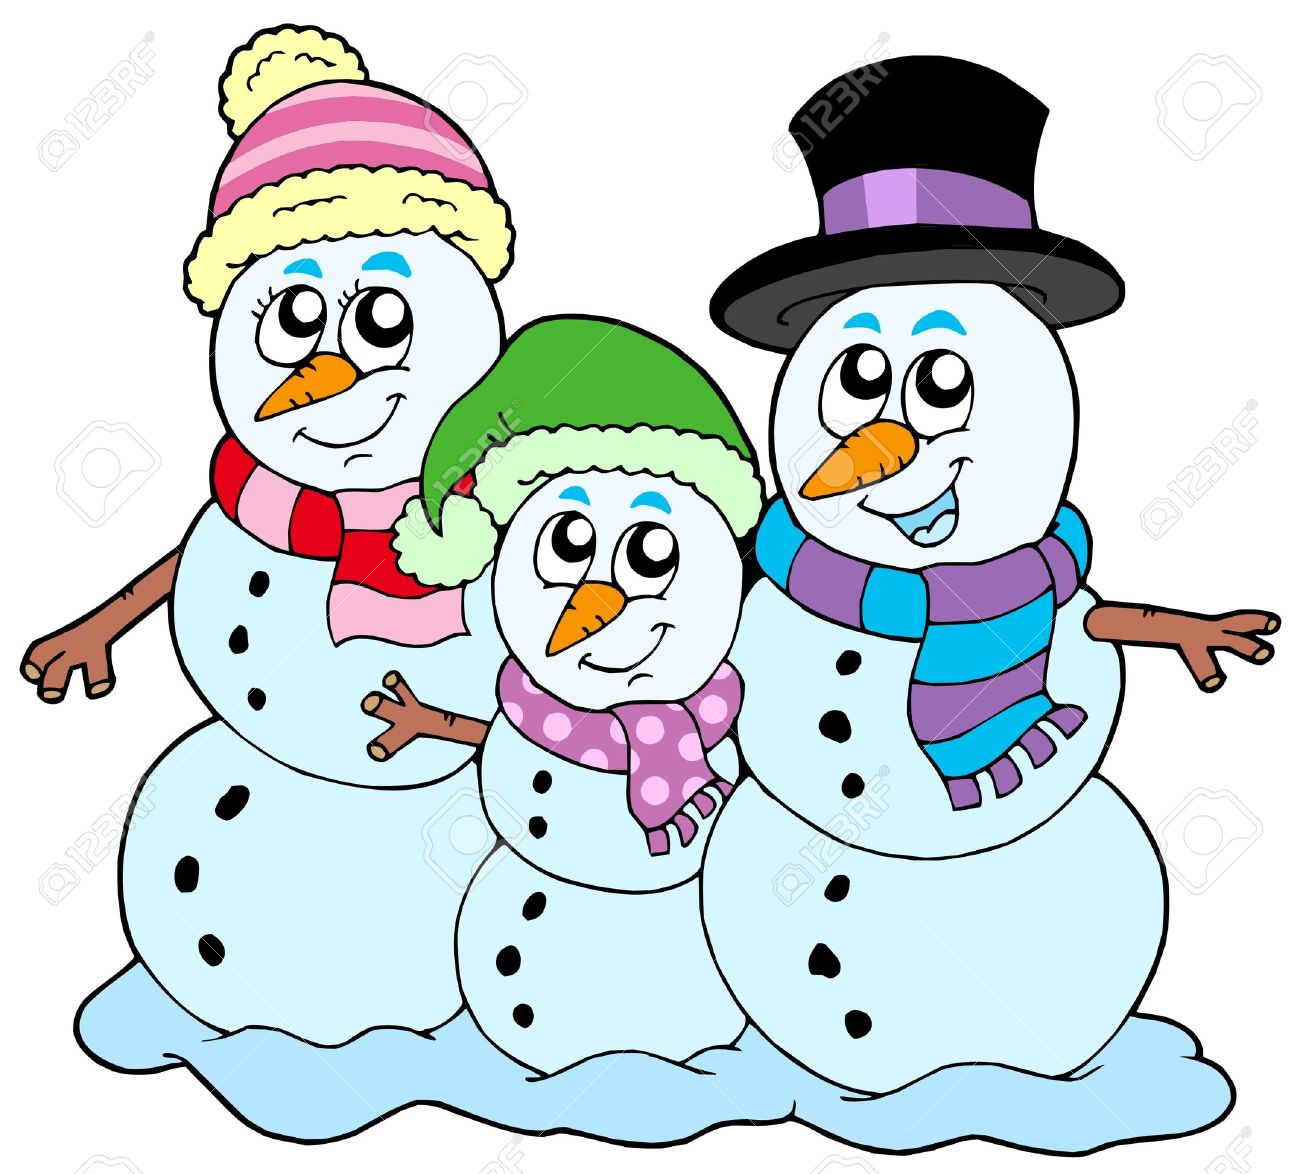 snowman family on white background royalty free cliparts vectors rh 123rf com Snowman Hat Clip Art Snowman Hat Clip Art